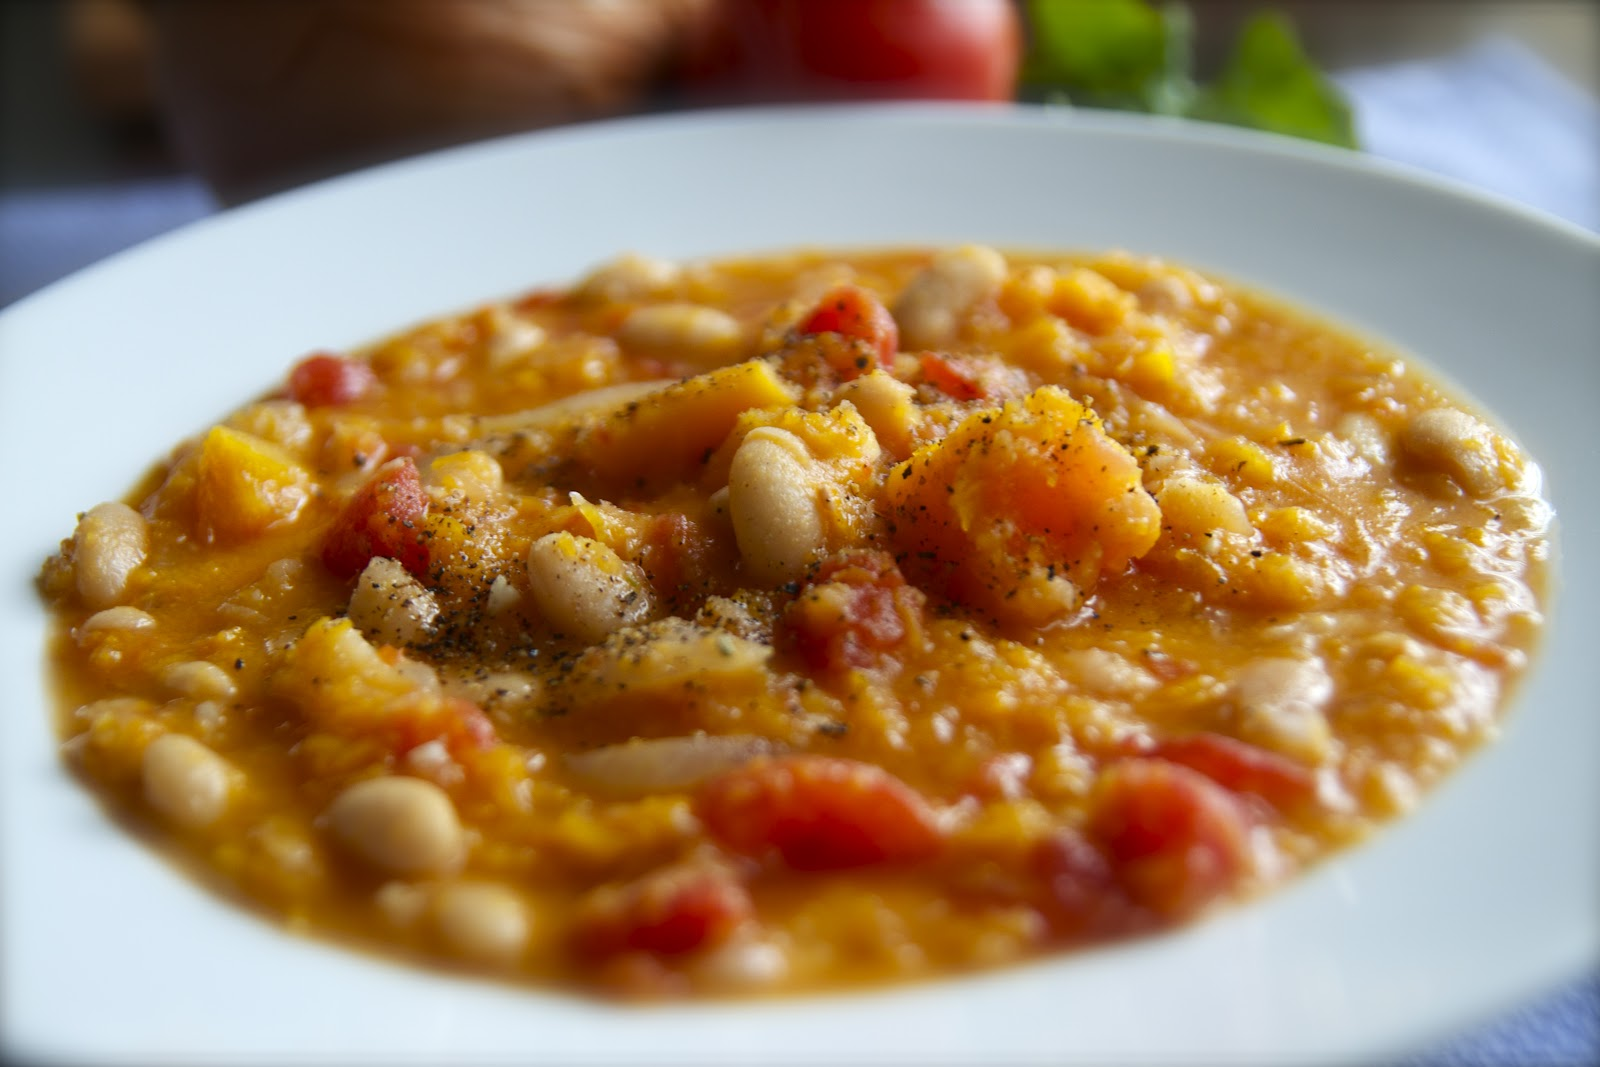 ... : Butternut Squash and White Bean Stew with Rosemary and Tomatoes